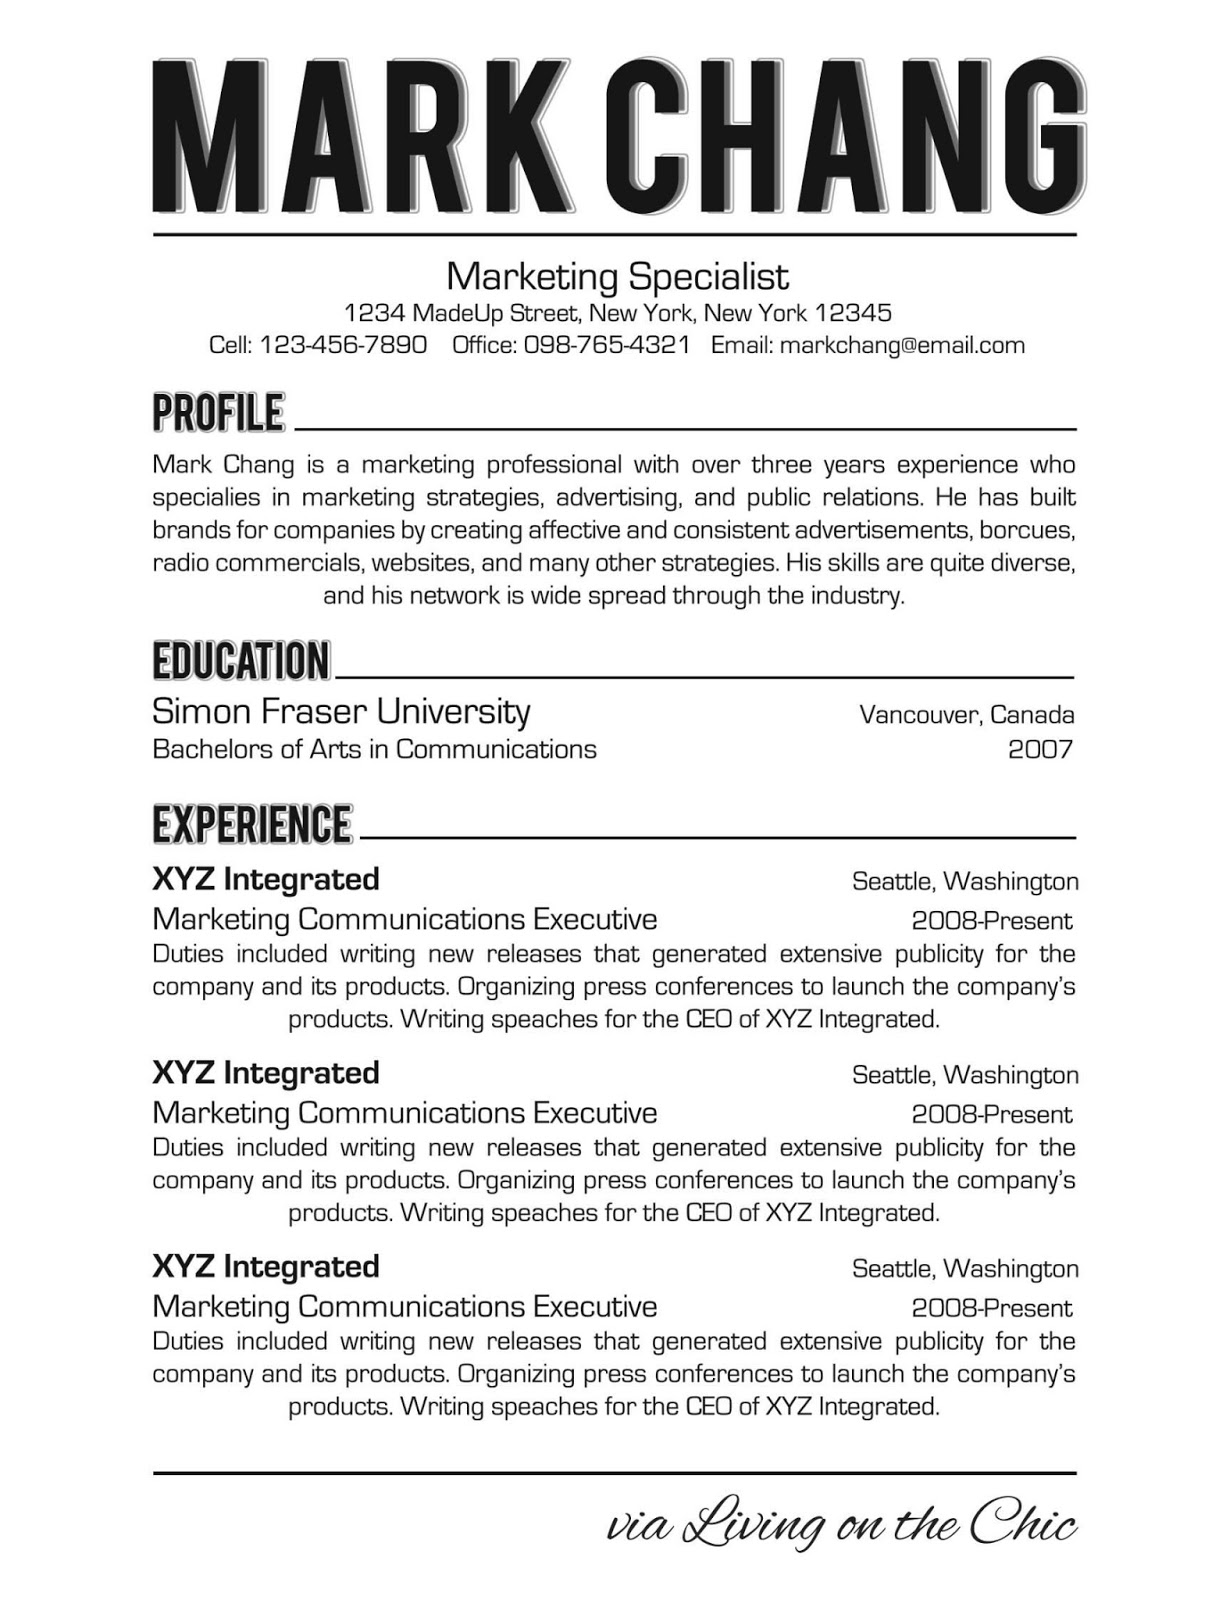 best font for resume headings the 5 best fonts to use on your